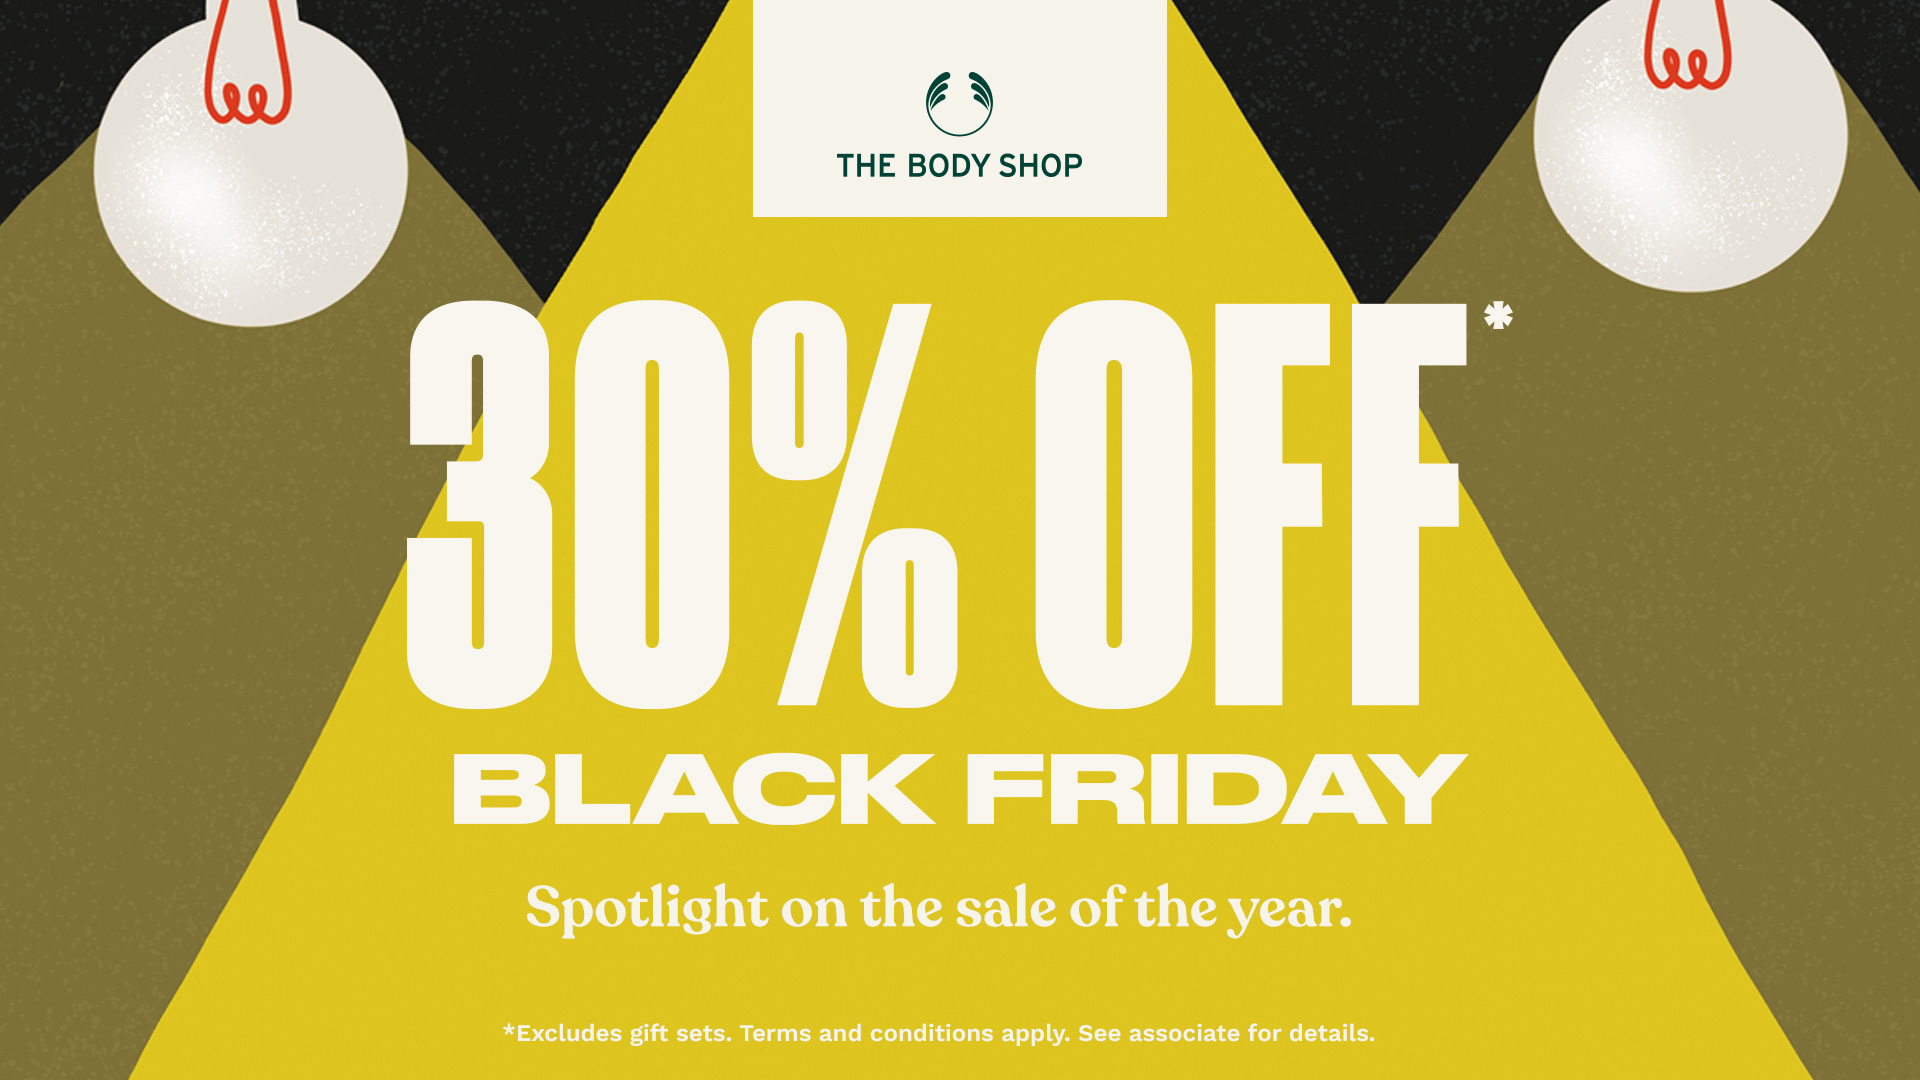 30% off Black Friday!